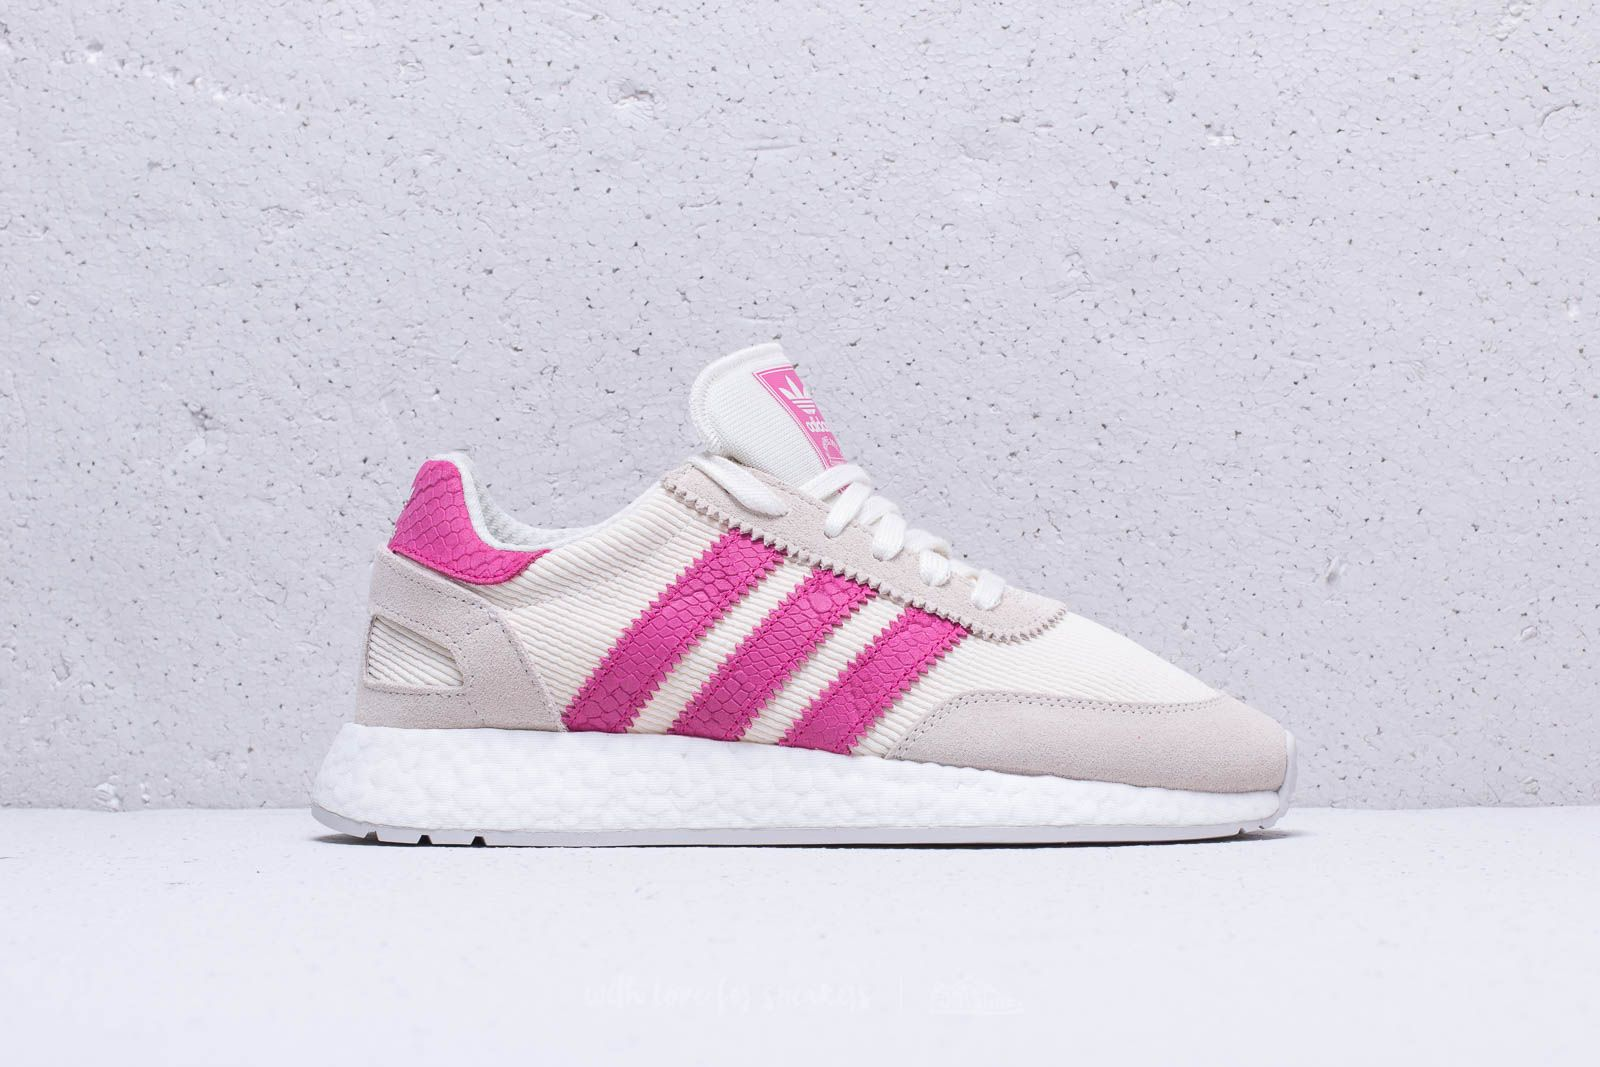 b63c10f51a4936 adidas I-5923 W Beige  Shock Pink  Grey One at a great price